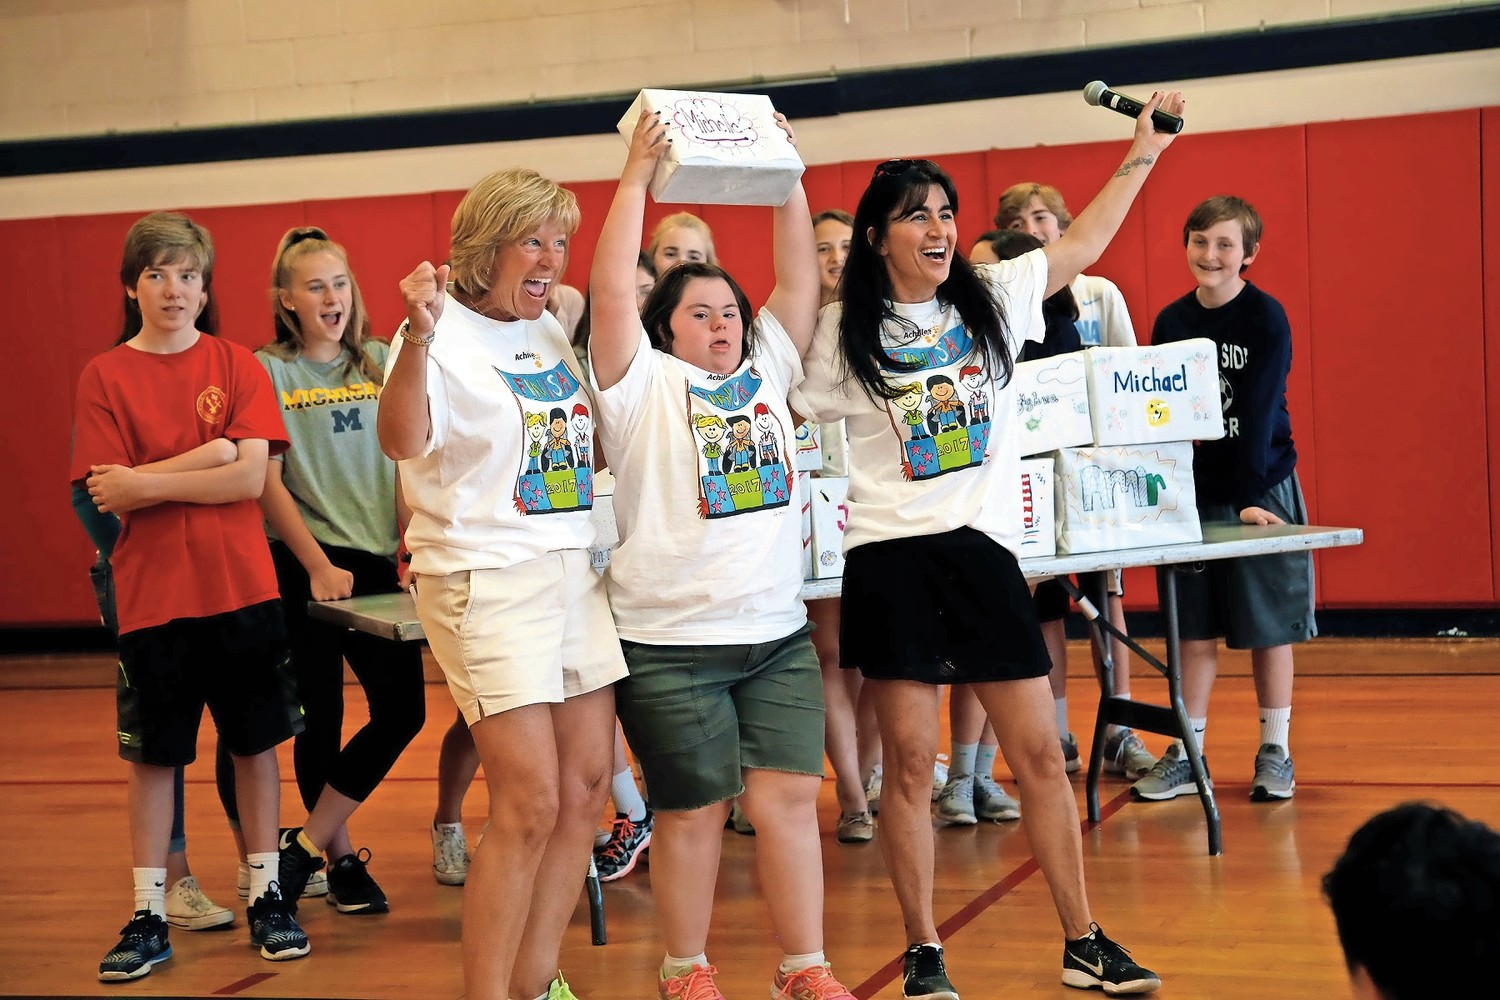 Michelle Piccone, center, with physical education teachers Meaghan Healey and Carolyn Ferguson, raised her sneakers with pride after completing the virtual marathon last year.